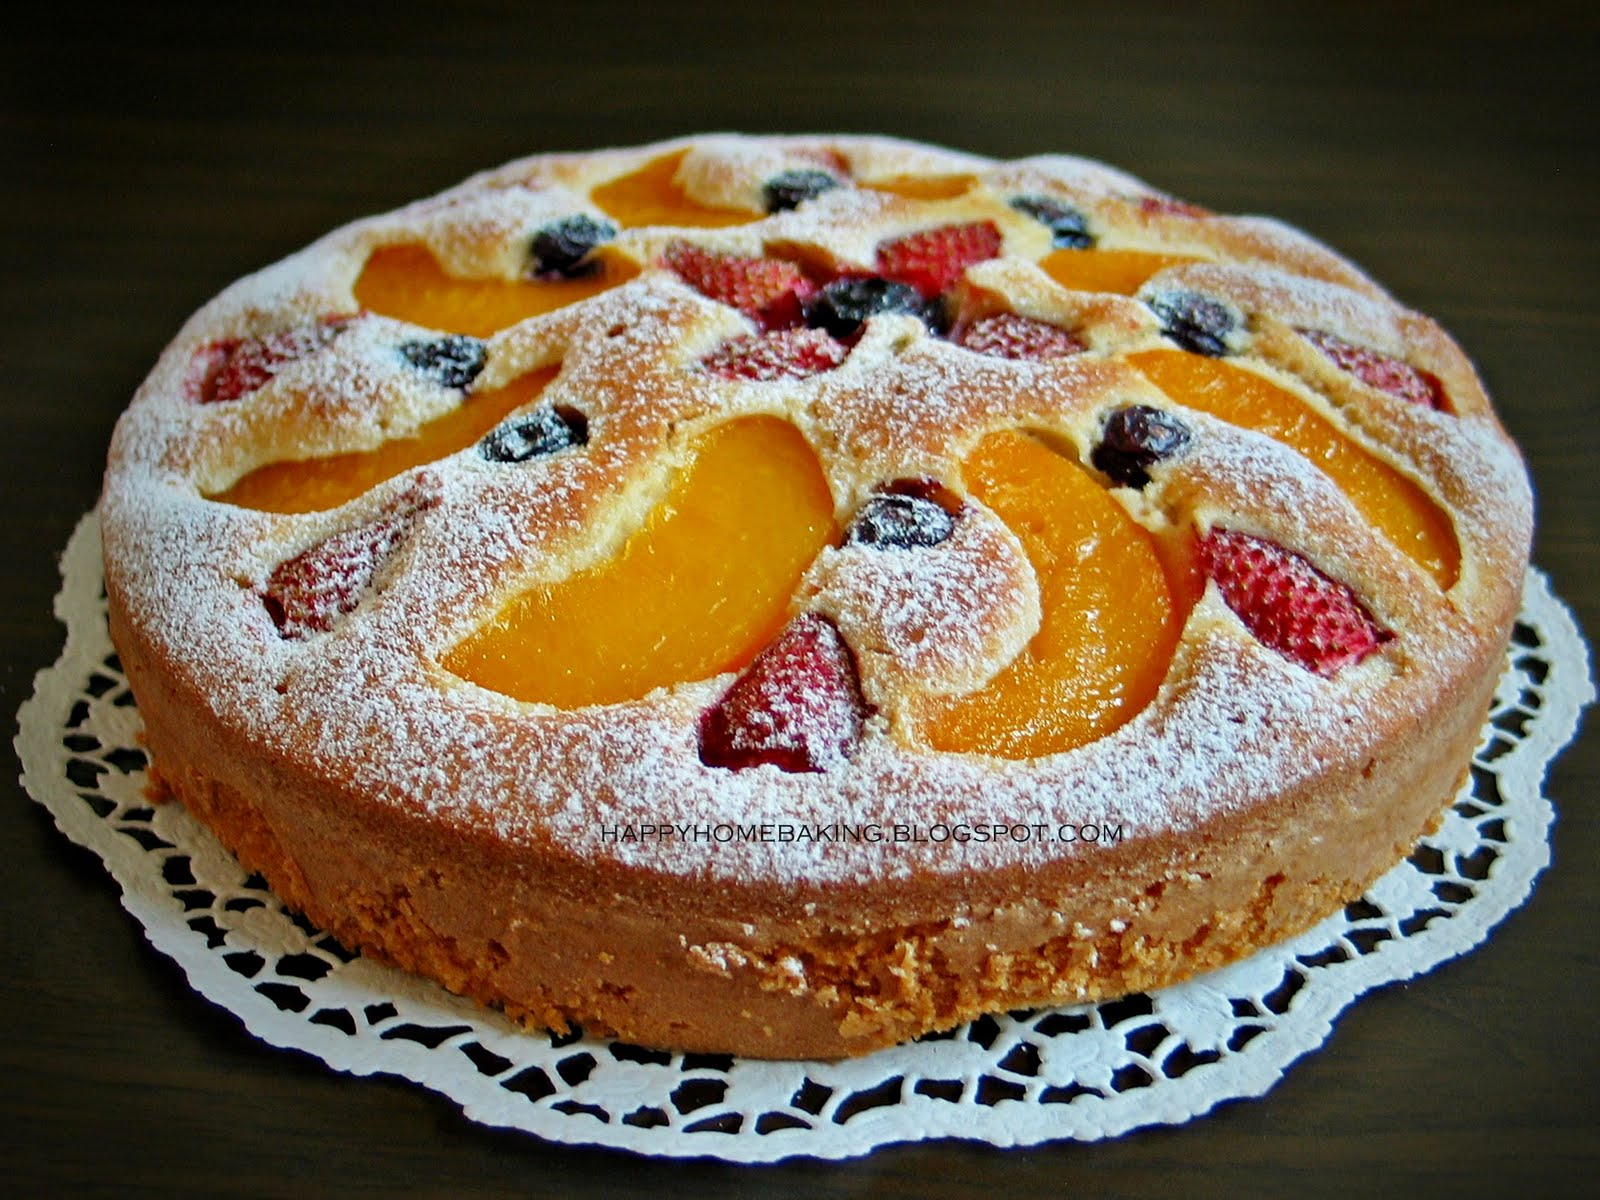 Fruit Cake Recipe Made With Spice Cake Mix